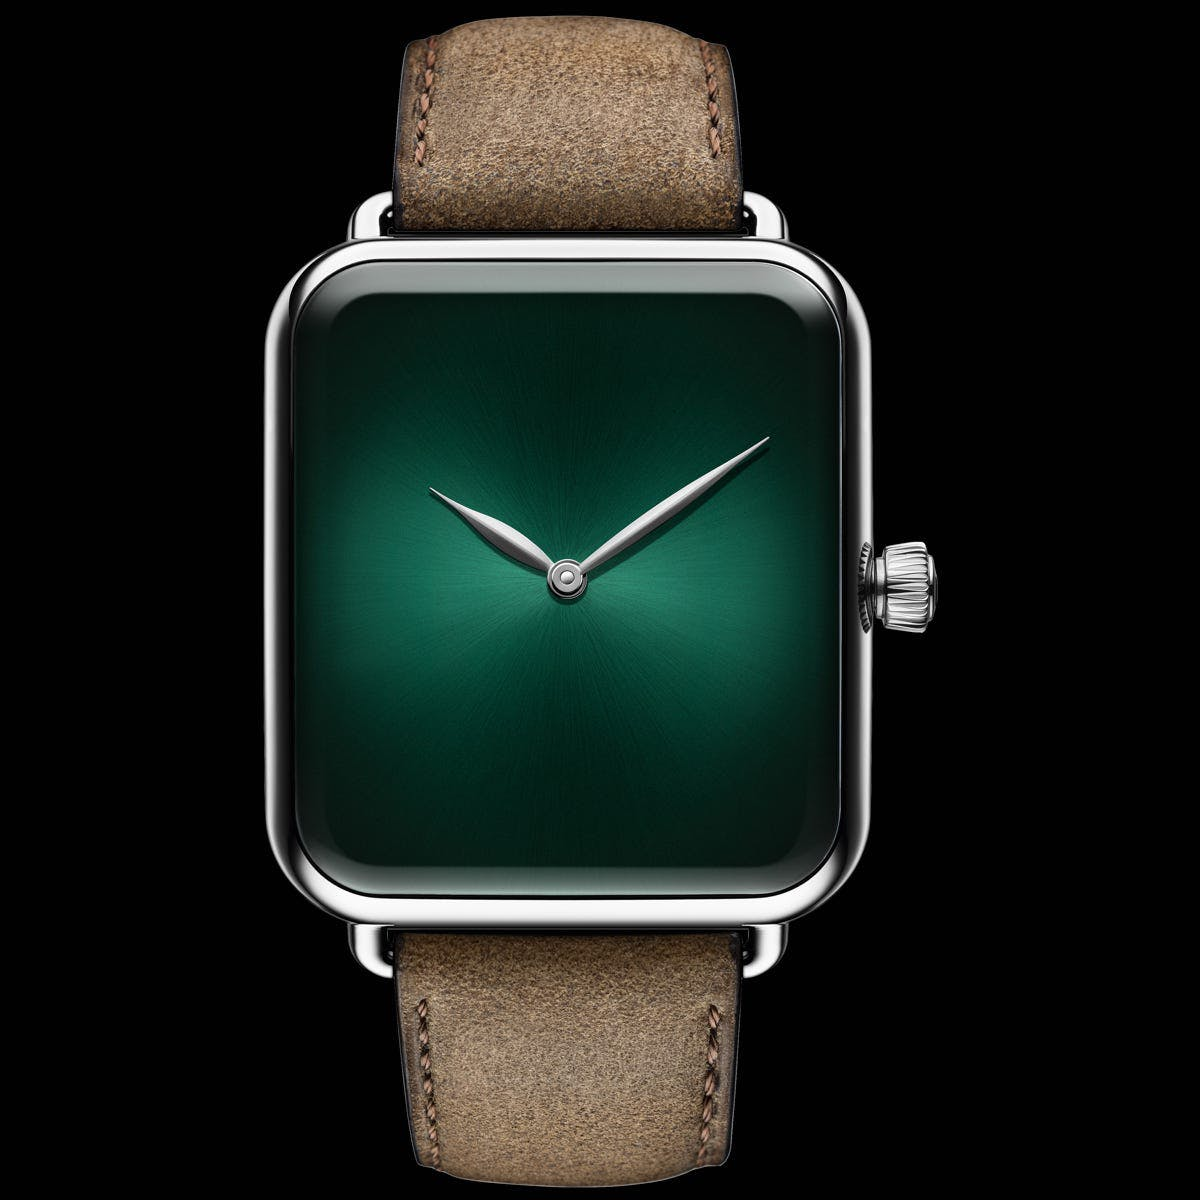 H. Moser & Cie. Swiss Alp Watch